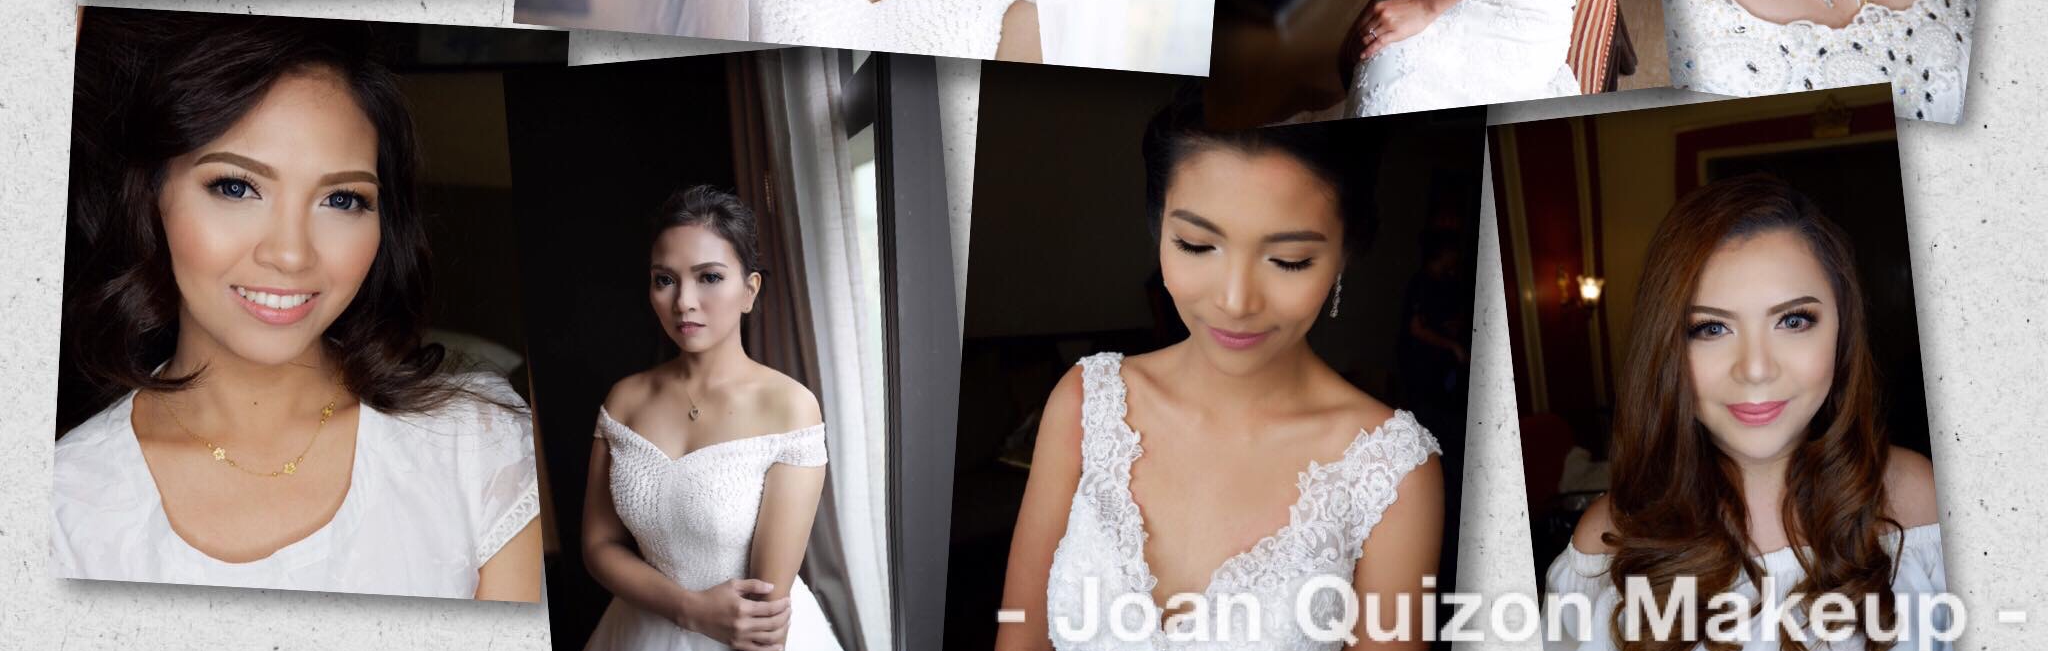 Joan Quizon MakeUp